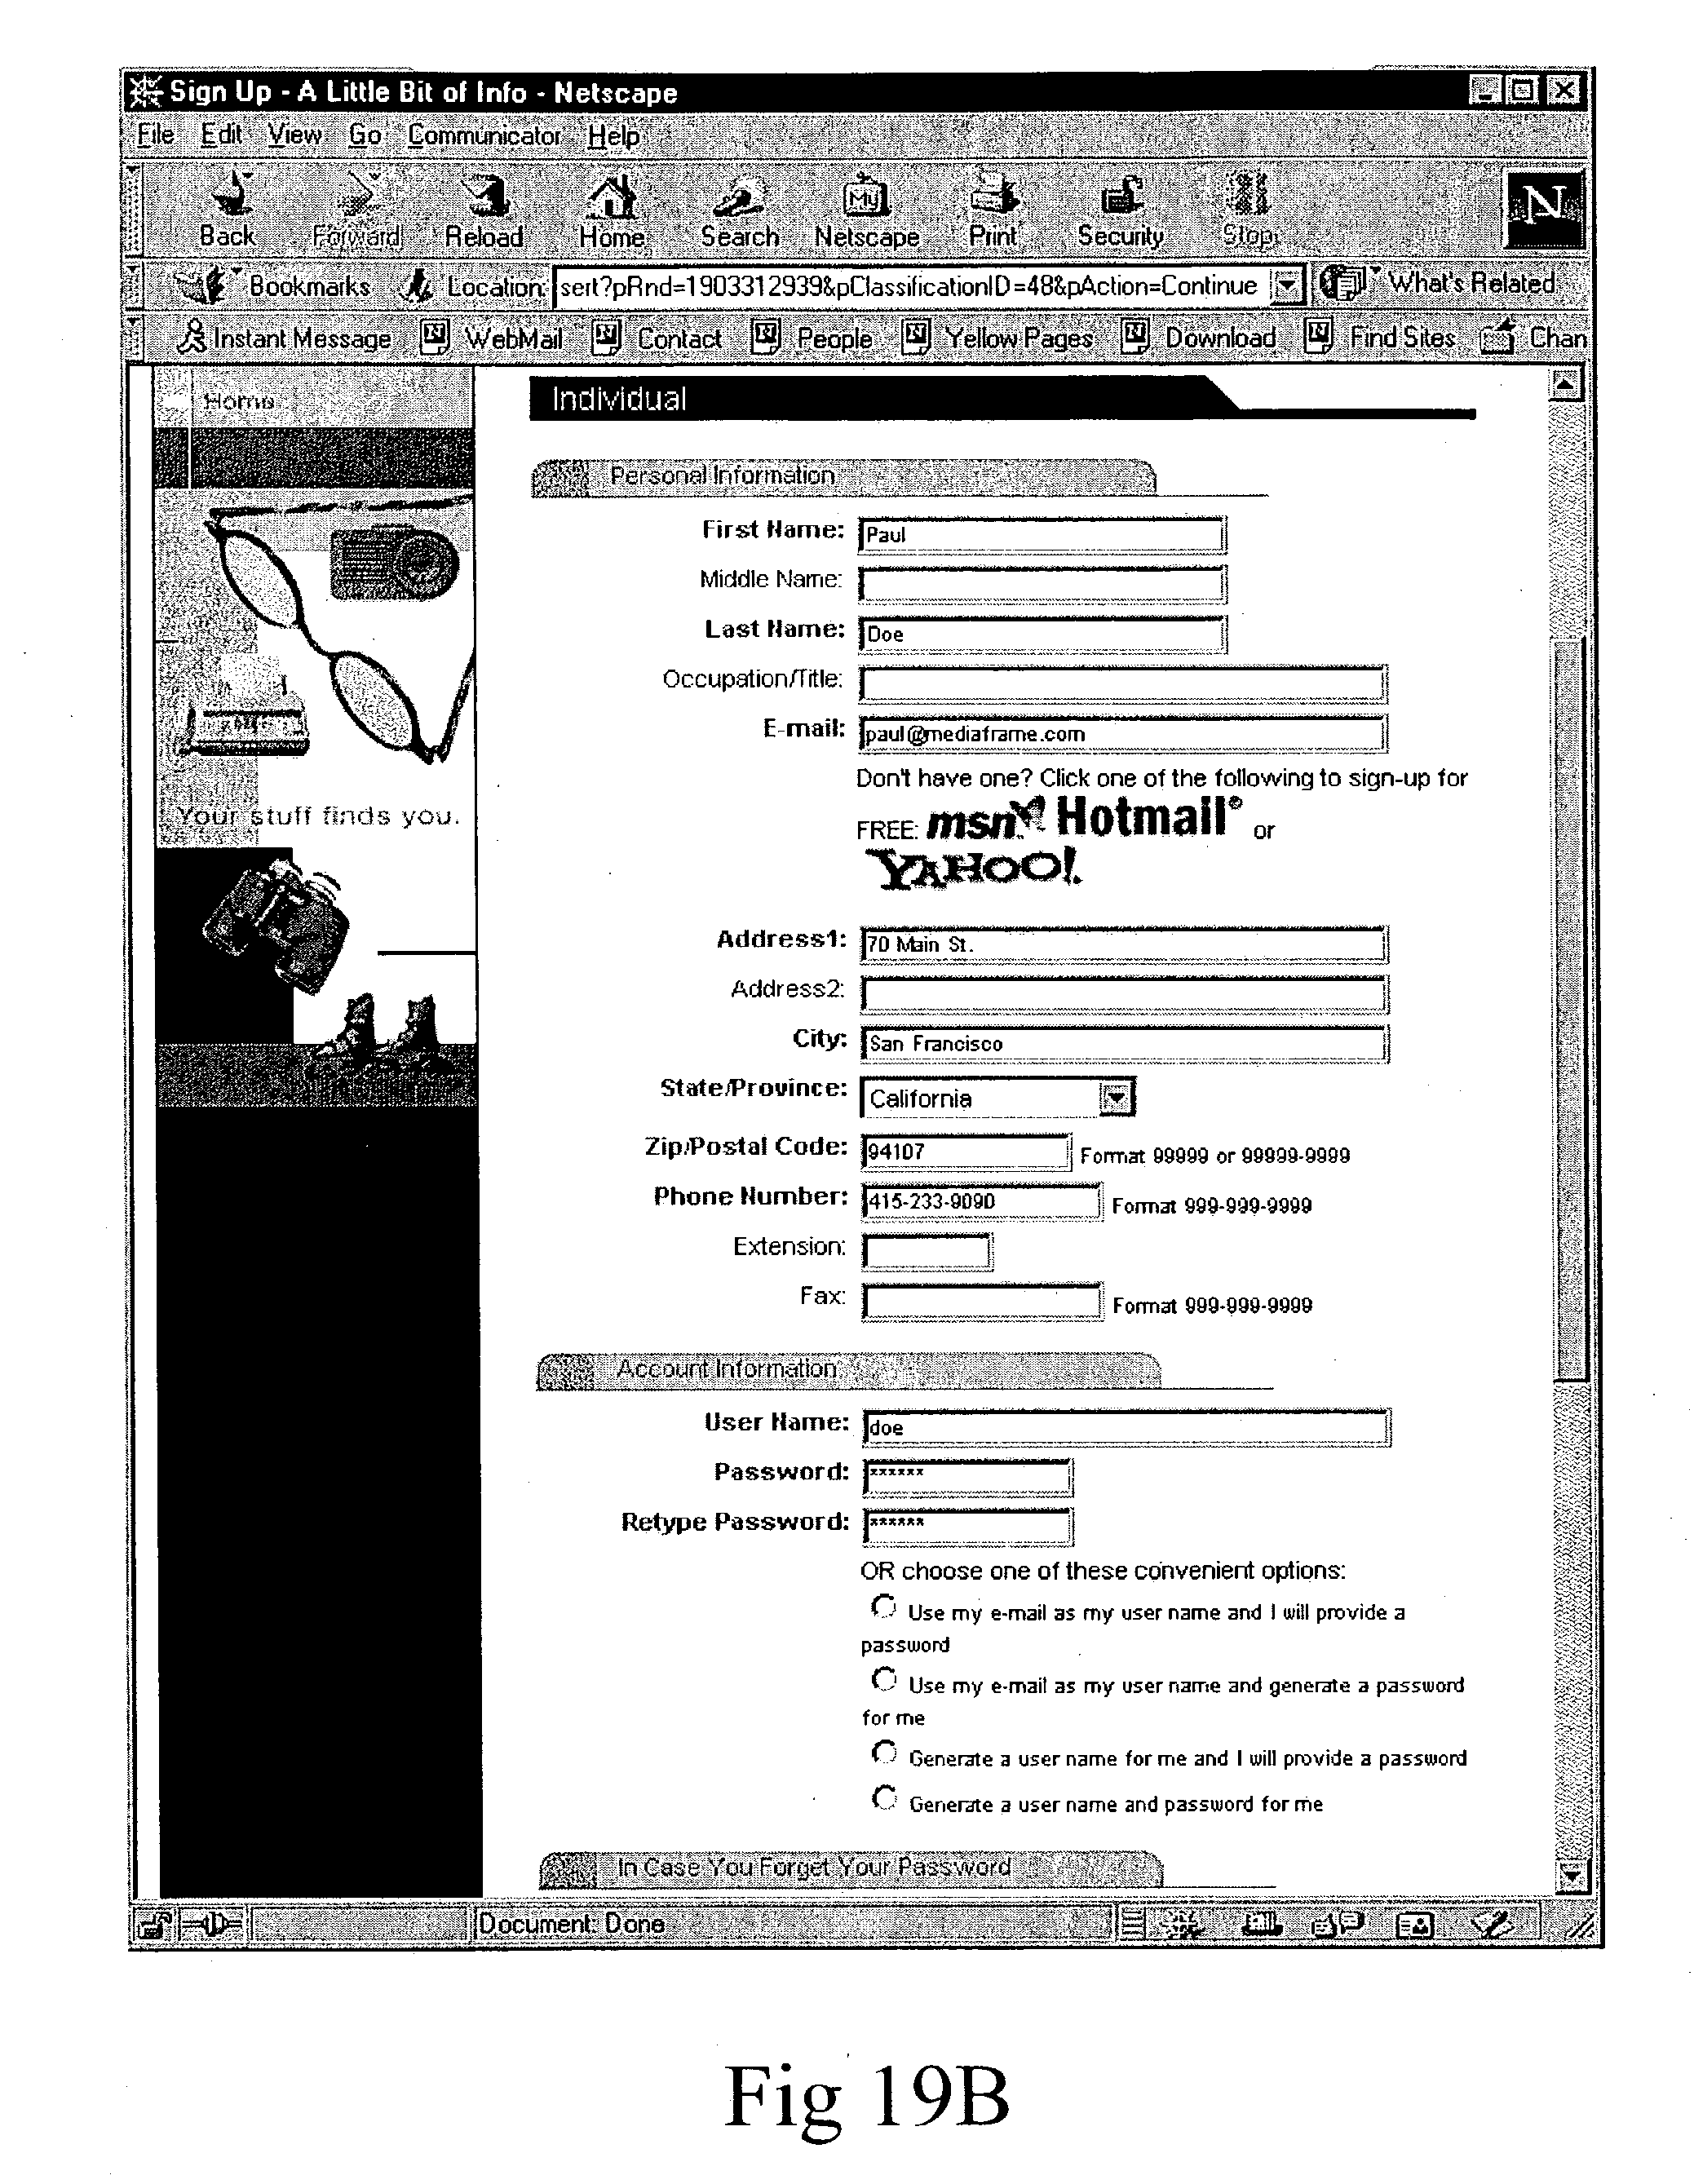 Usps Receipt Word Patent Us  System And Method For Asset Tracking With  Gross Receipt Definition with Stripe Create Invoice Patent Drawing Hertz Find Receipt Excel